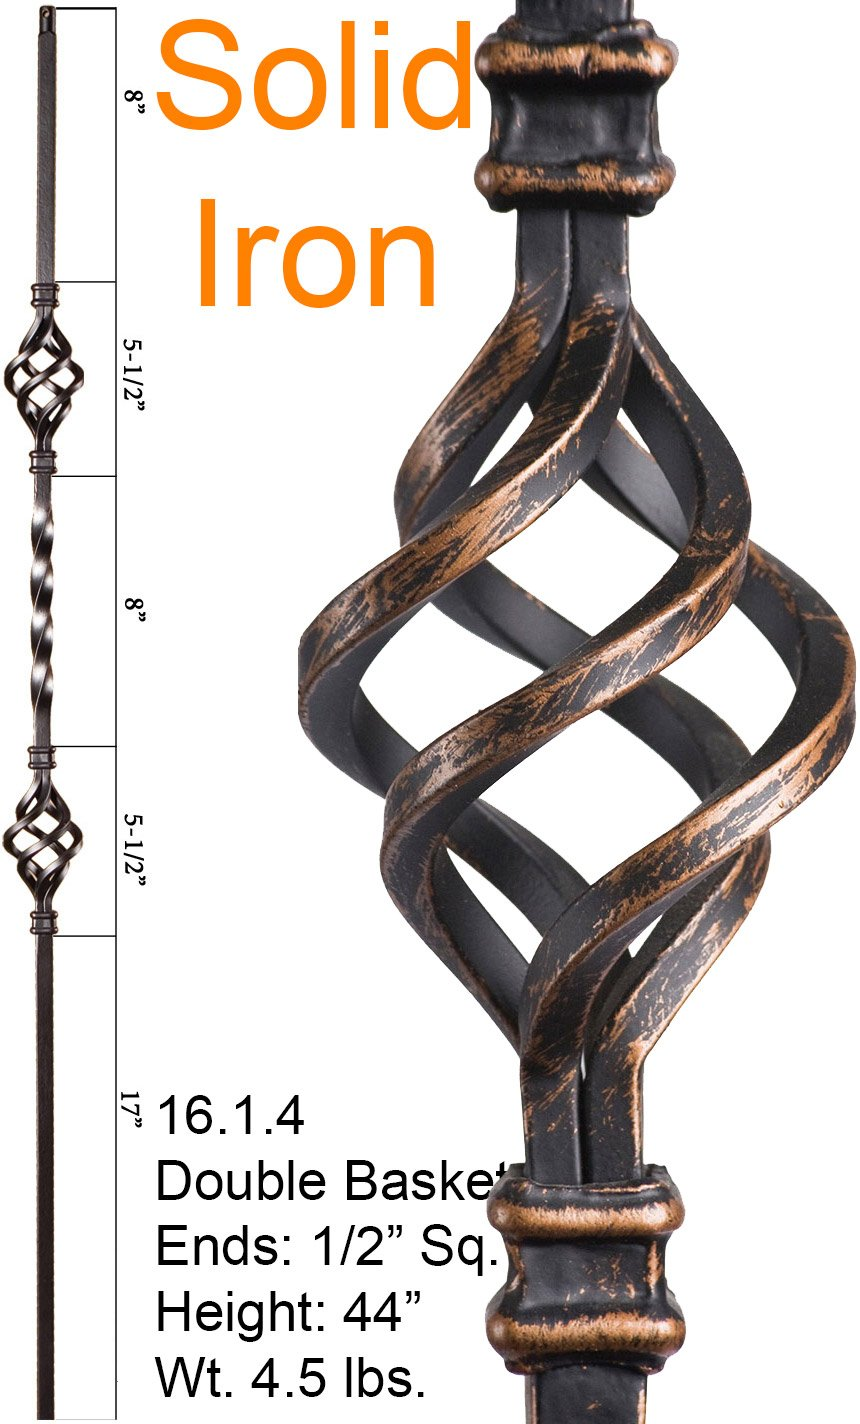 Oil Rubbed Bronze 16.1.4 Double Basket Iron Baluster for Staircase Remodel, Box of 5